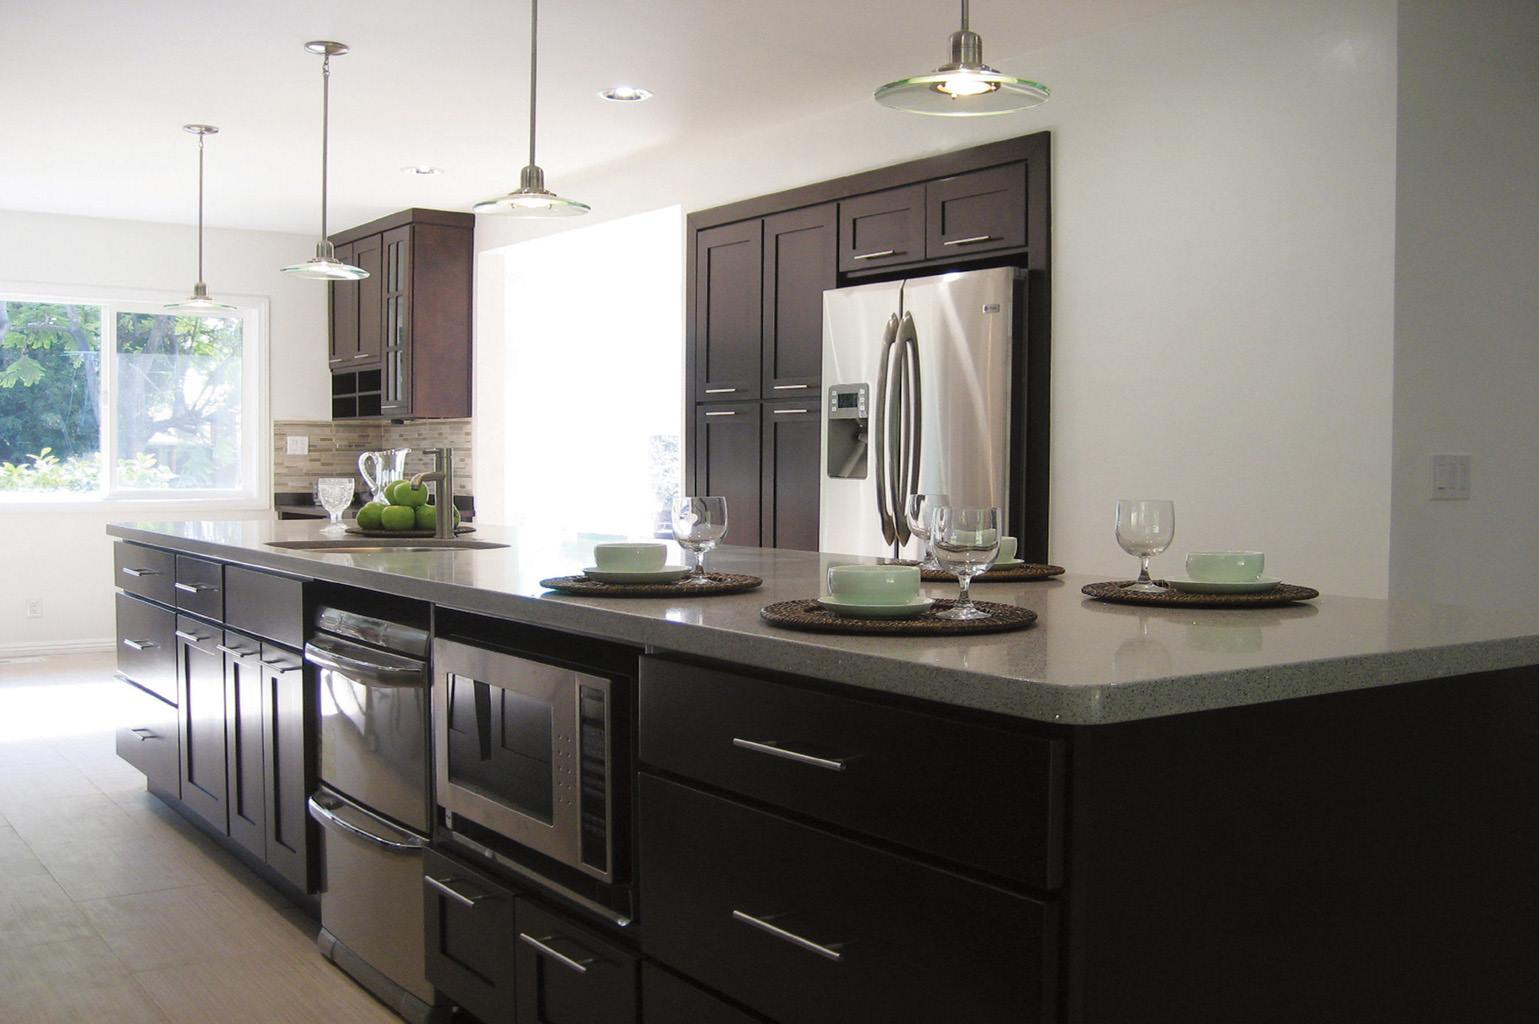 Talk To A Pro About Stock Kitchen Cabinets Amp Remodeling Get A Free Estimate